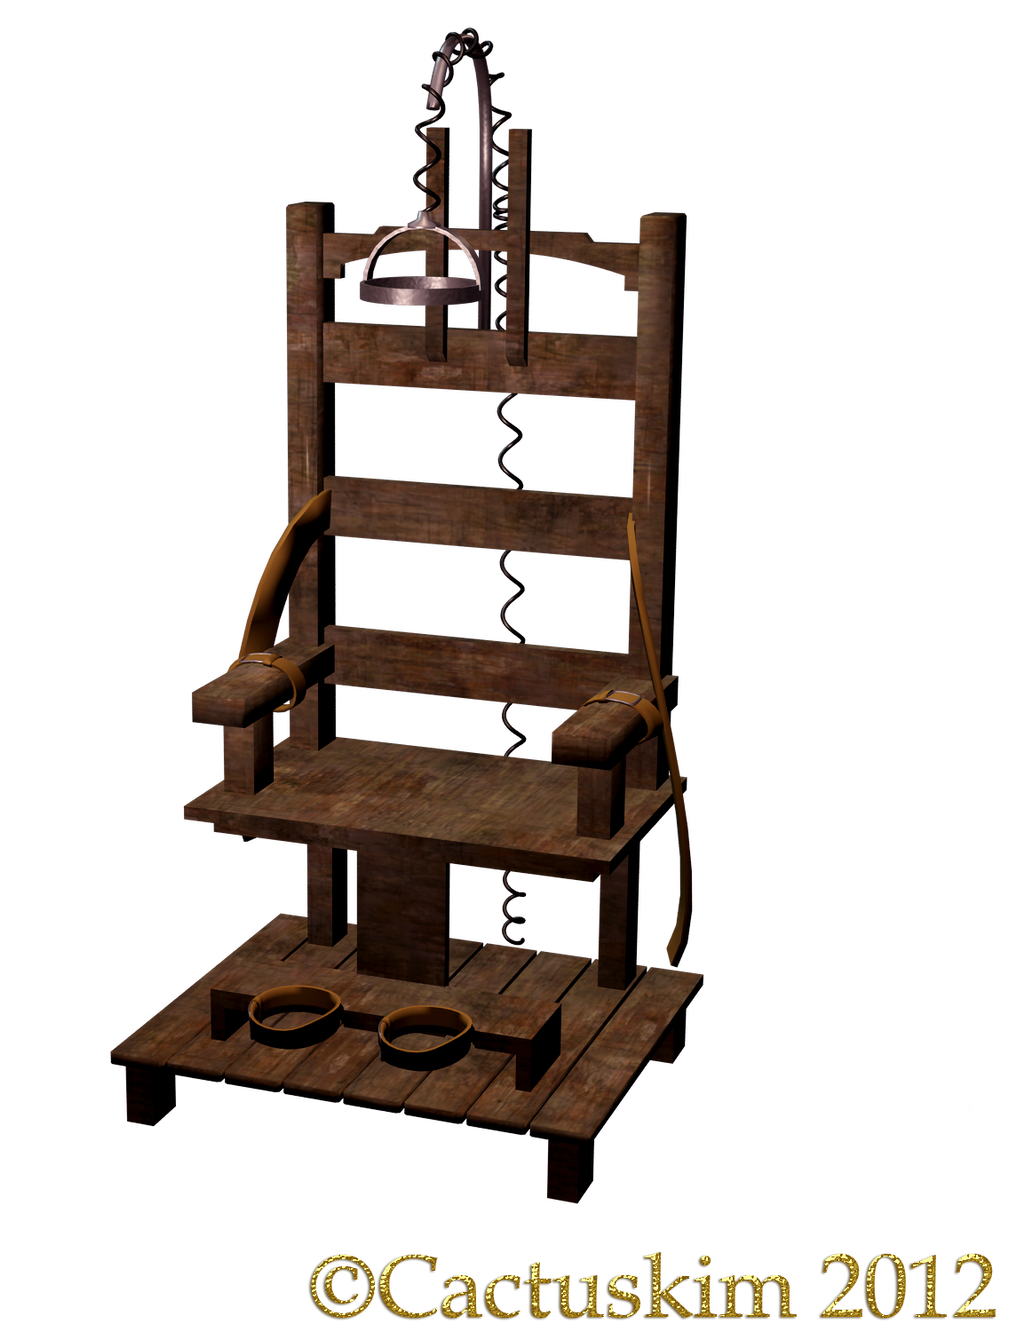 The Chair KL_PNG Electric Chair by cactuskim on DeviantArt